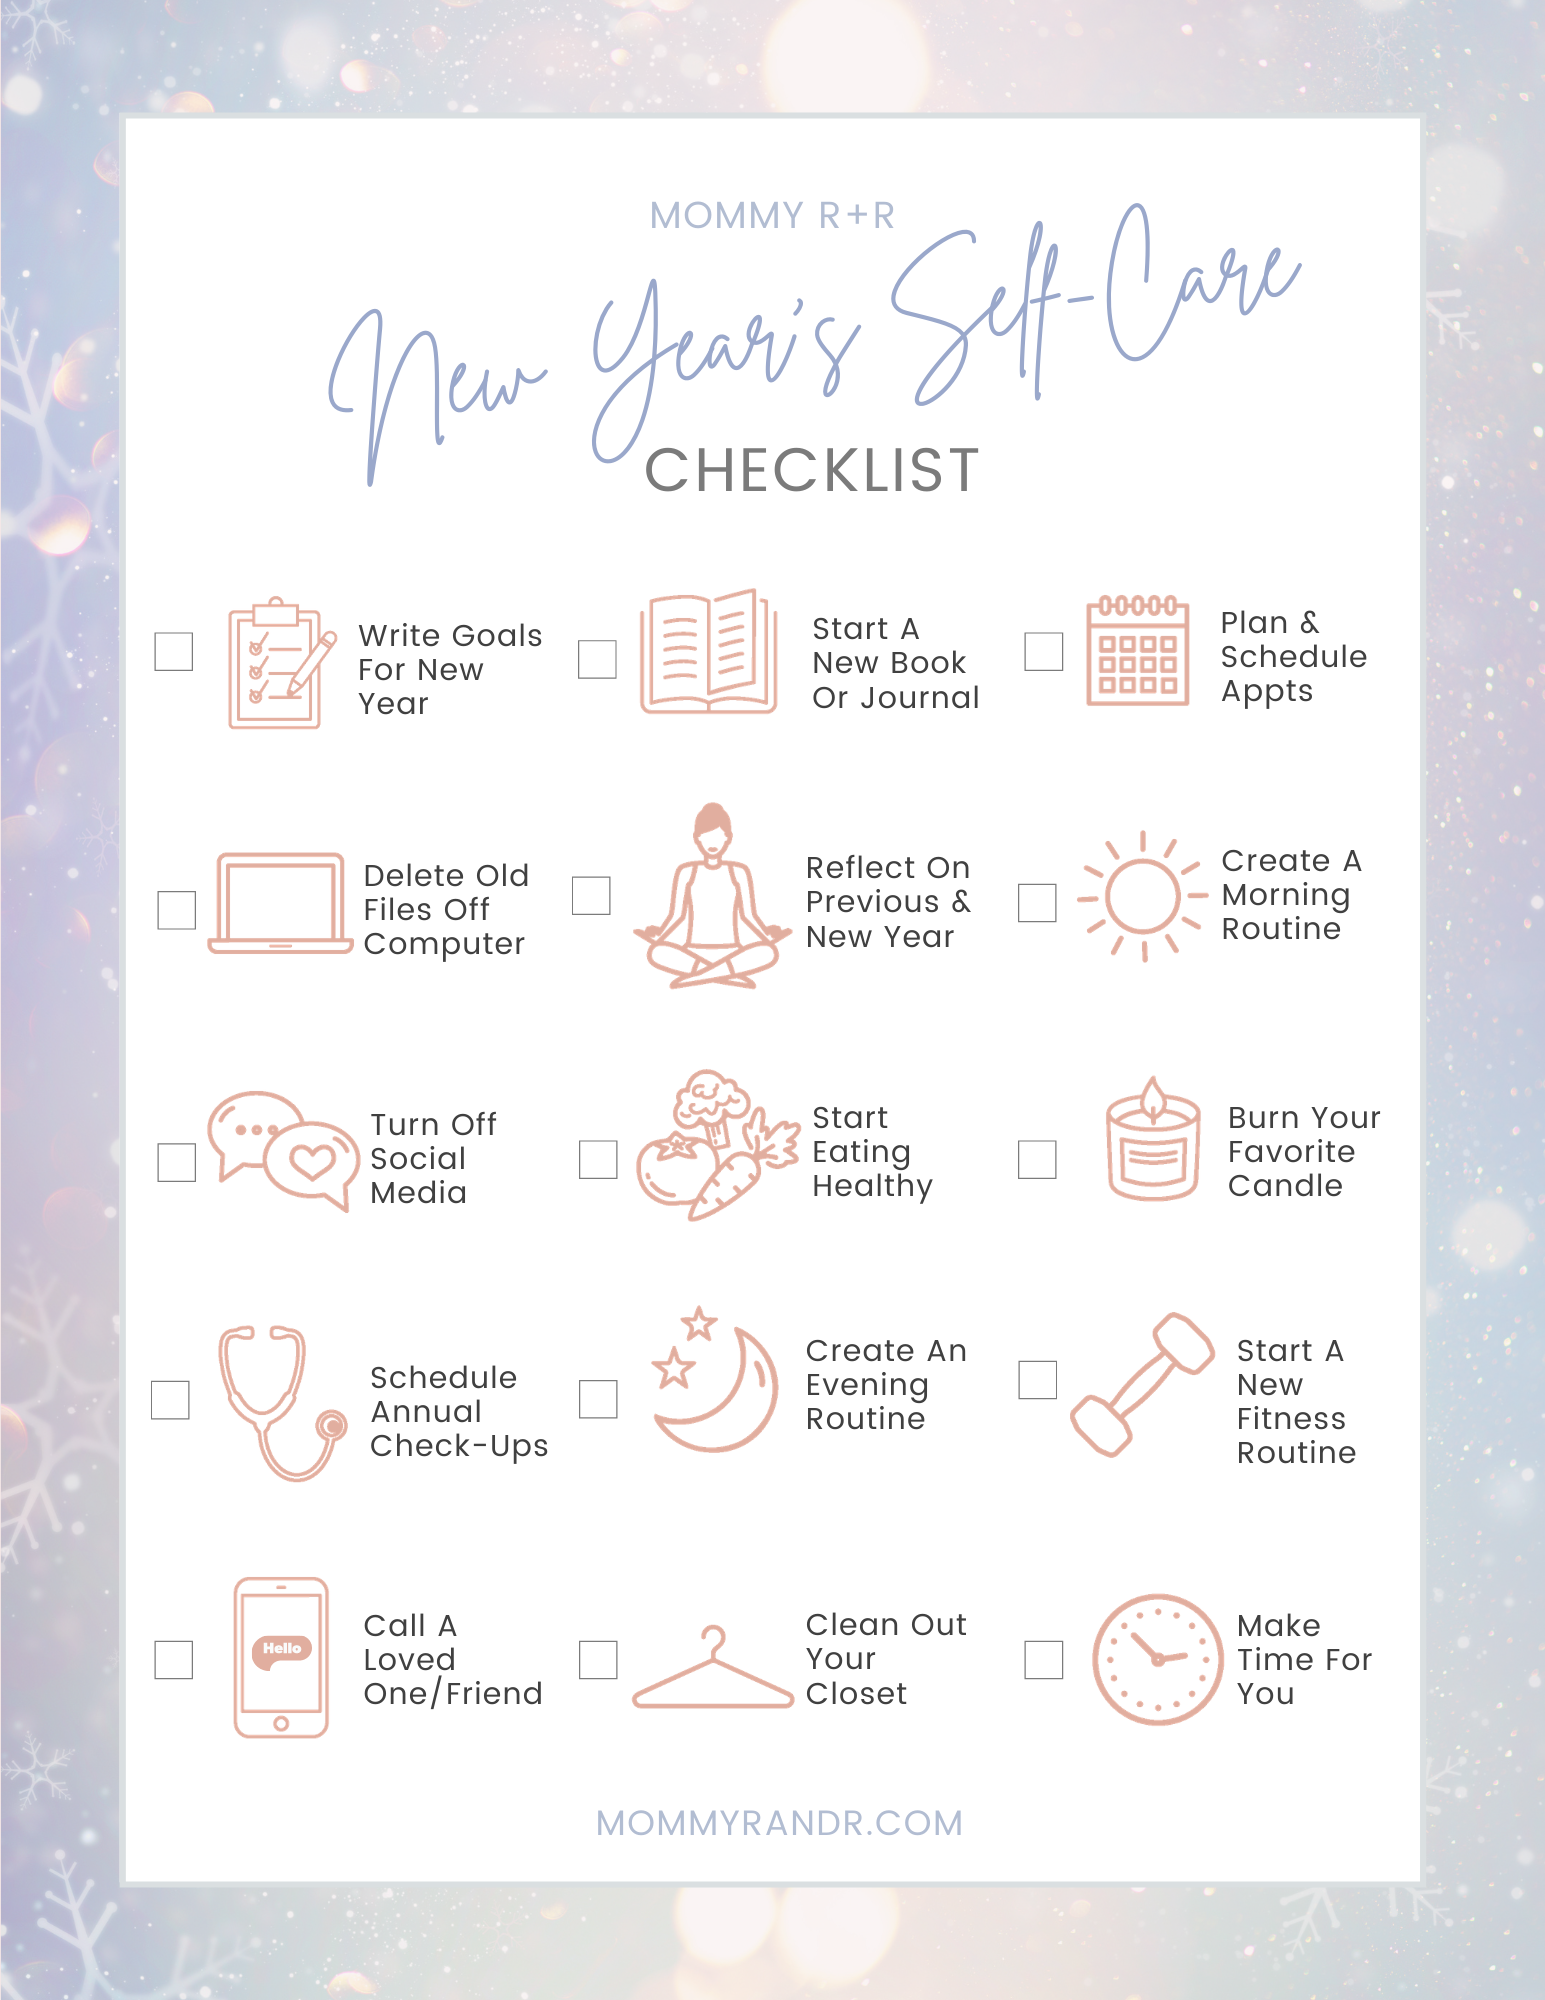 Self-Care Checklist mommyrandr valerie pierre